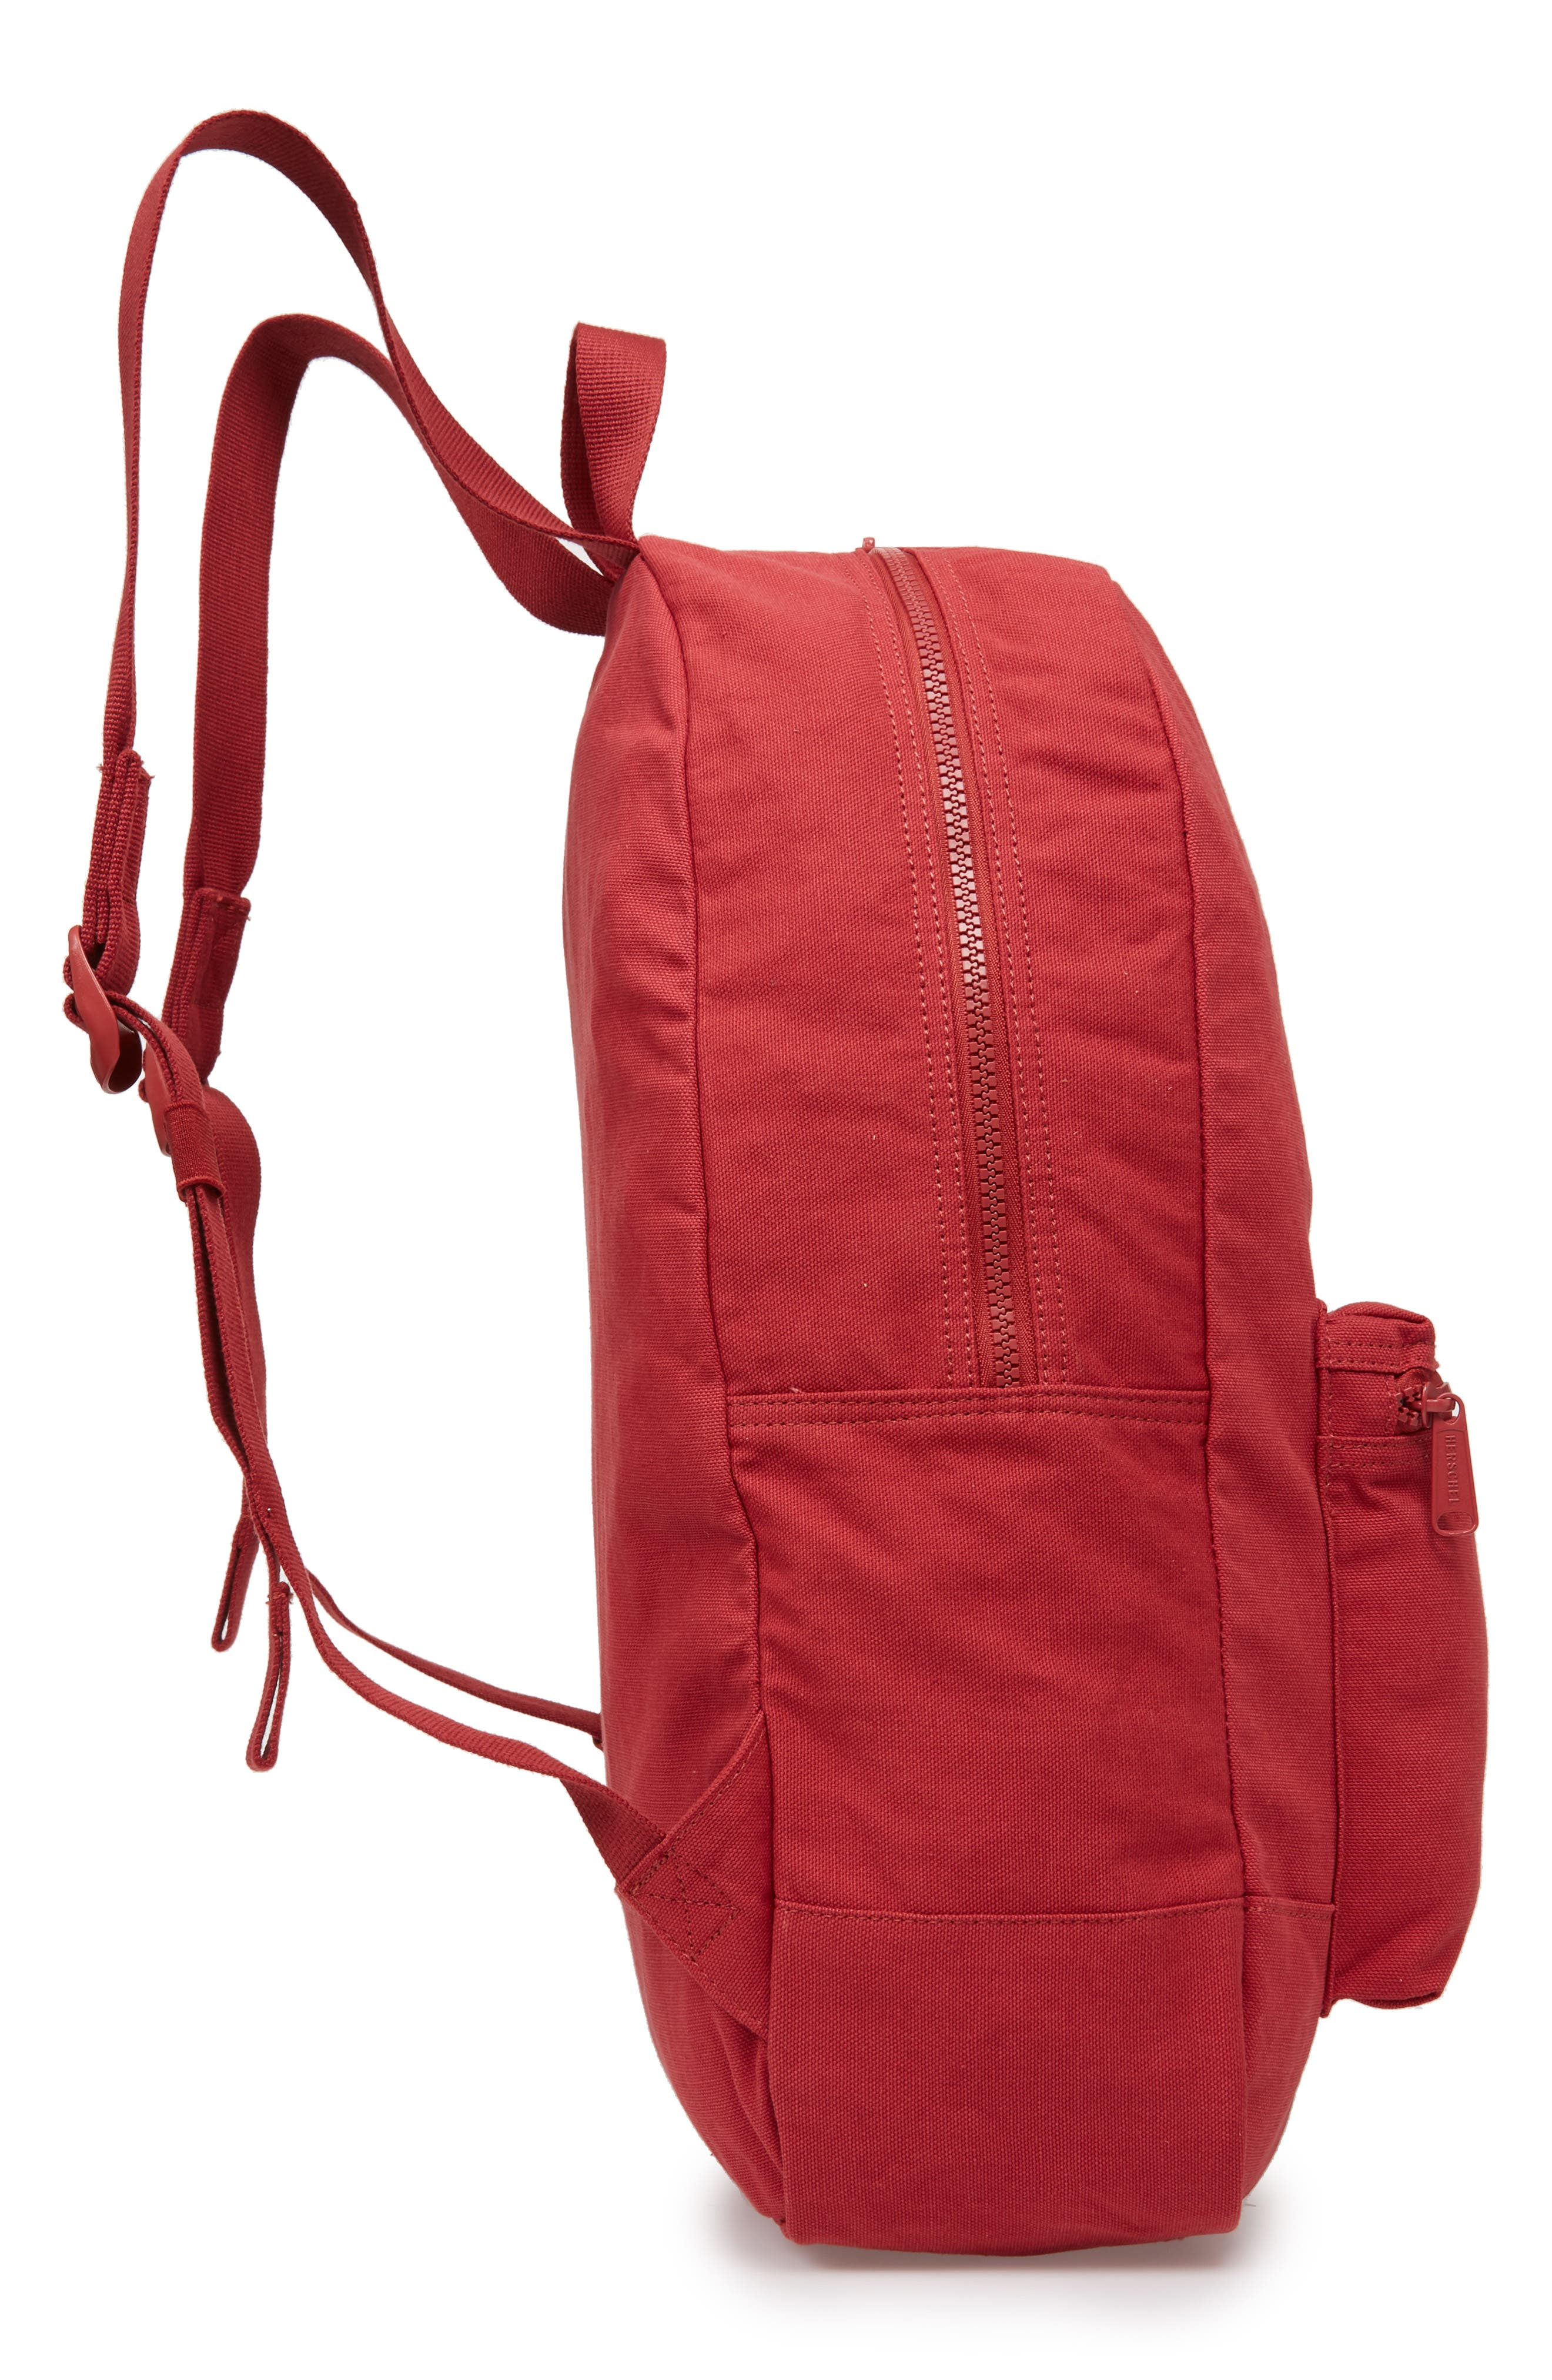 Cotton Casuals Daypack Backpack,                             Alternate thumbnail 39, color,